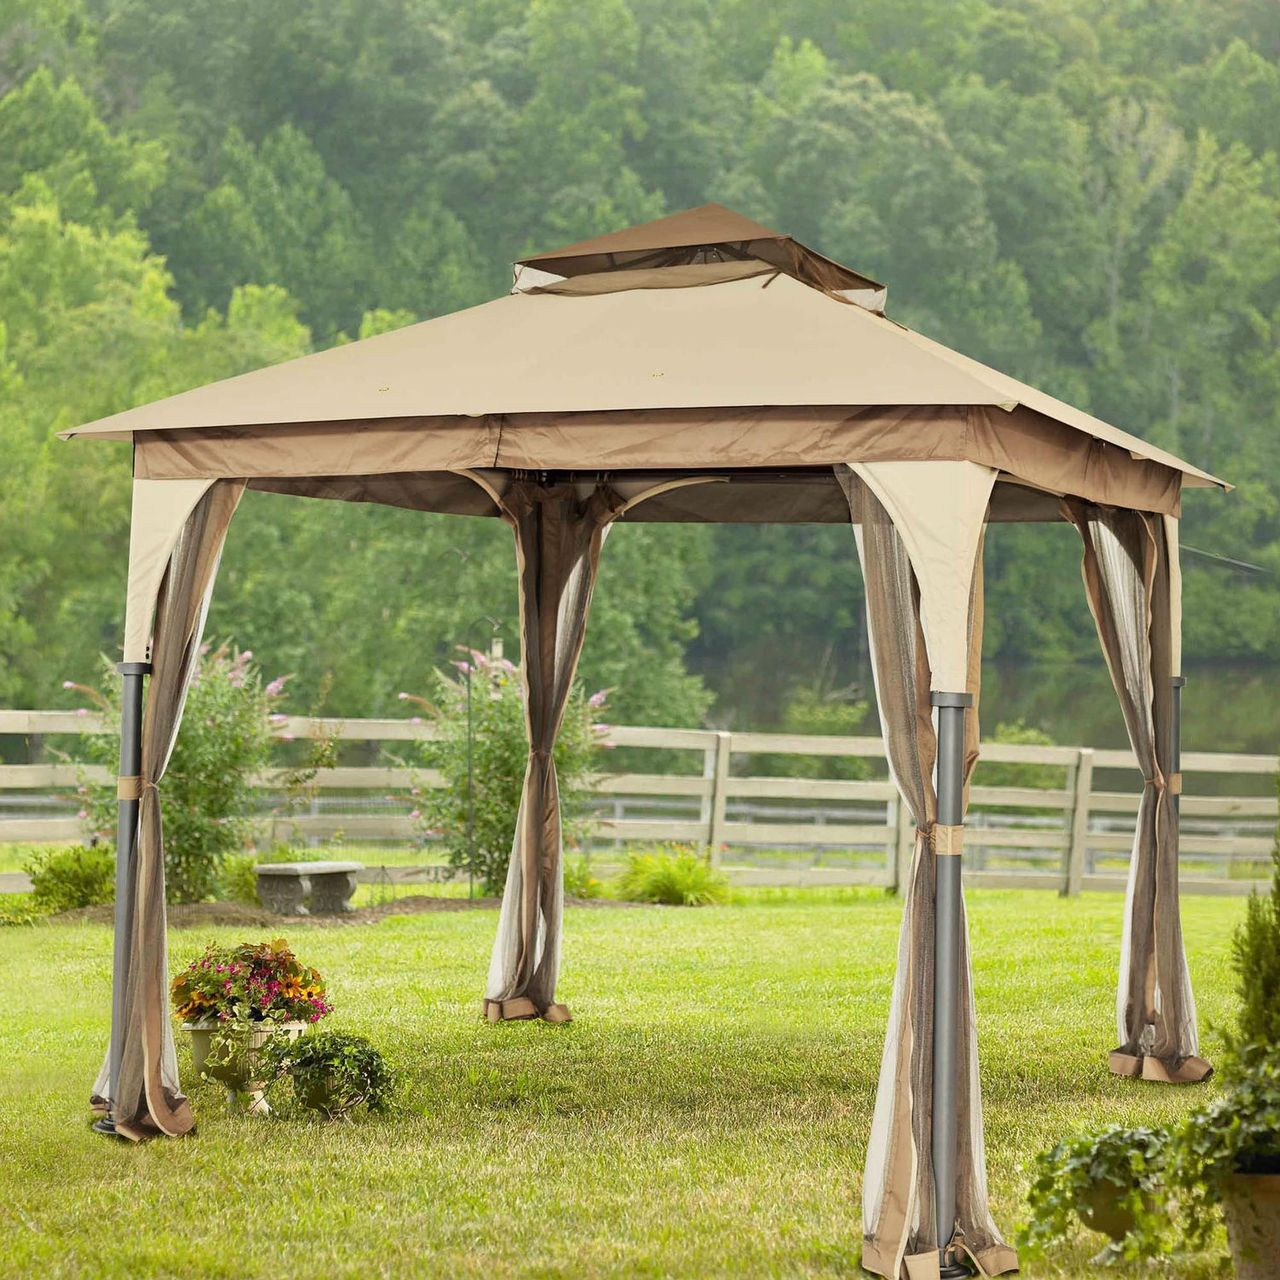 8 Ft X 8 Ft Steel Frame Gazebo W/Beige Brown Canopy And